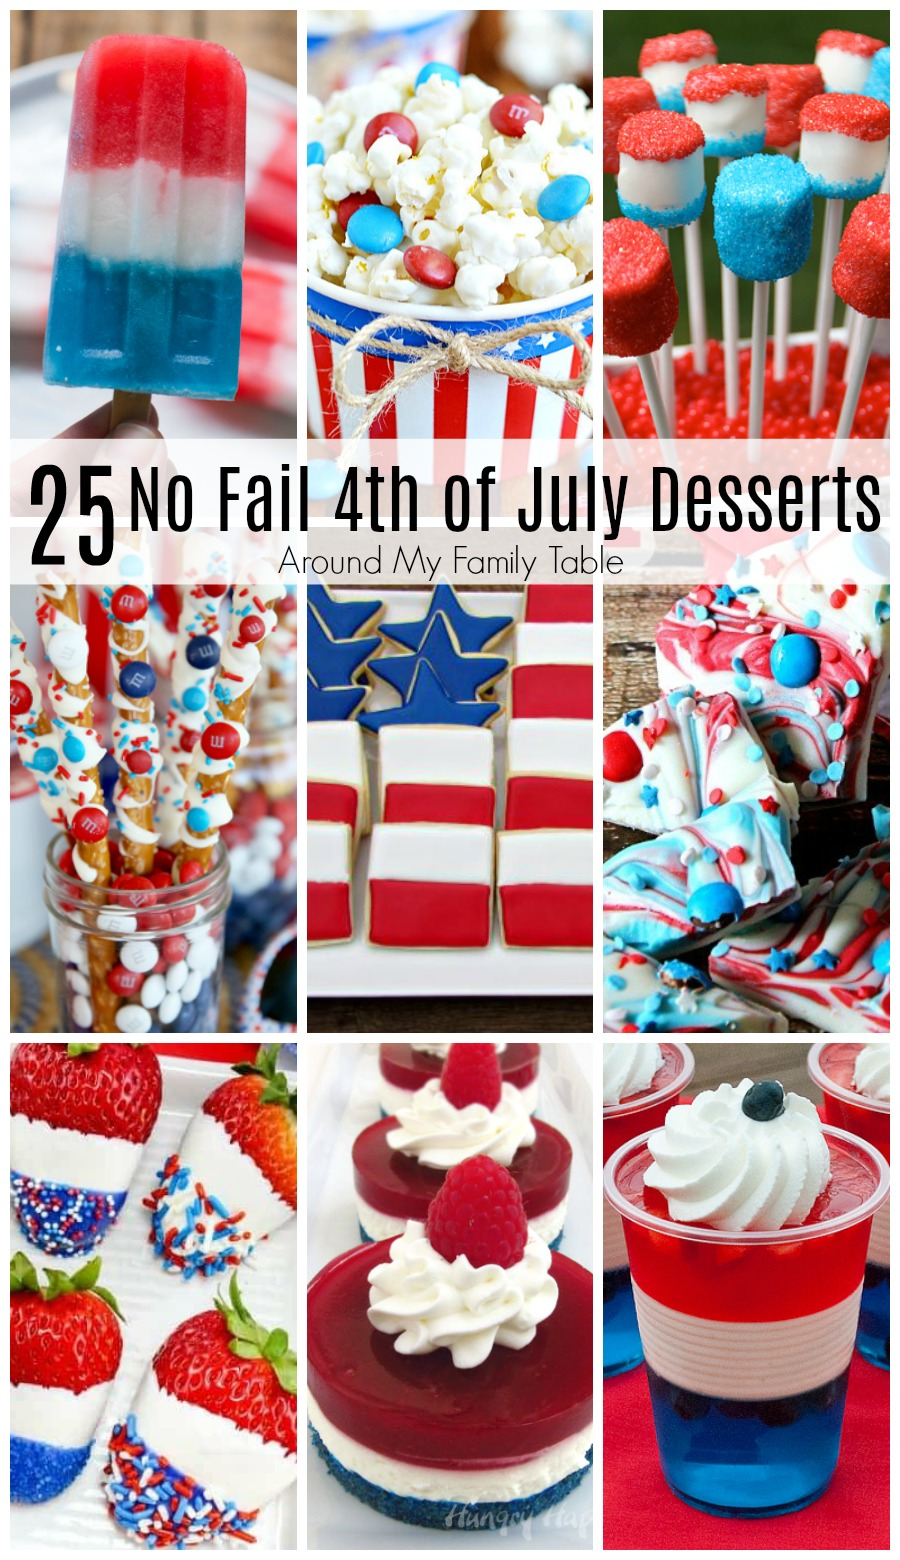 Don't let dessert stand in the way of festive 4th of July party.  These 25 No Fail 4th of July Desserts are just what you need for a no hassle and fun party!